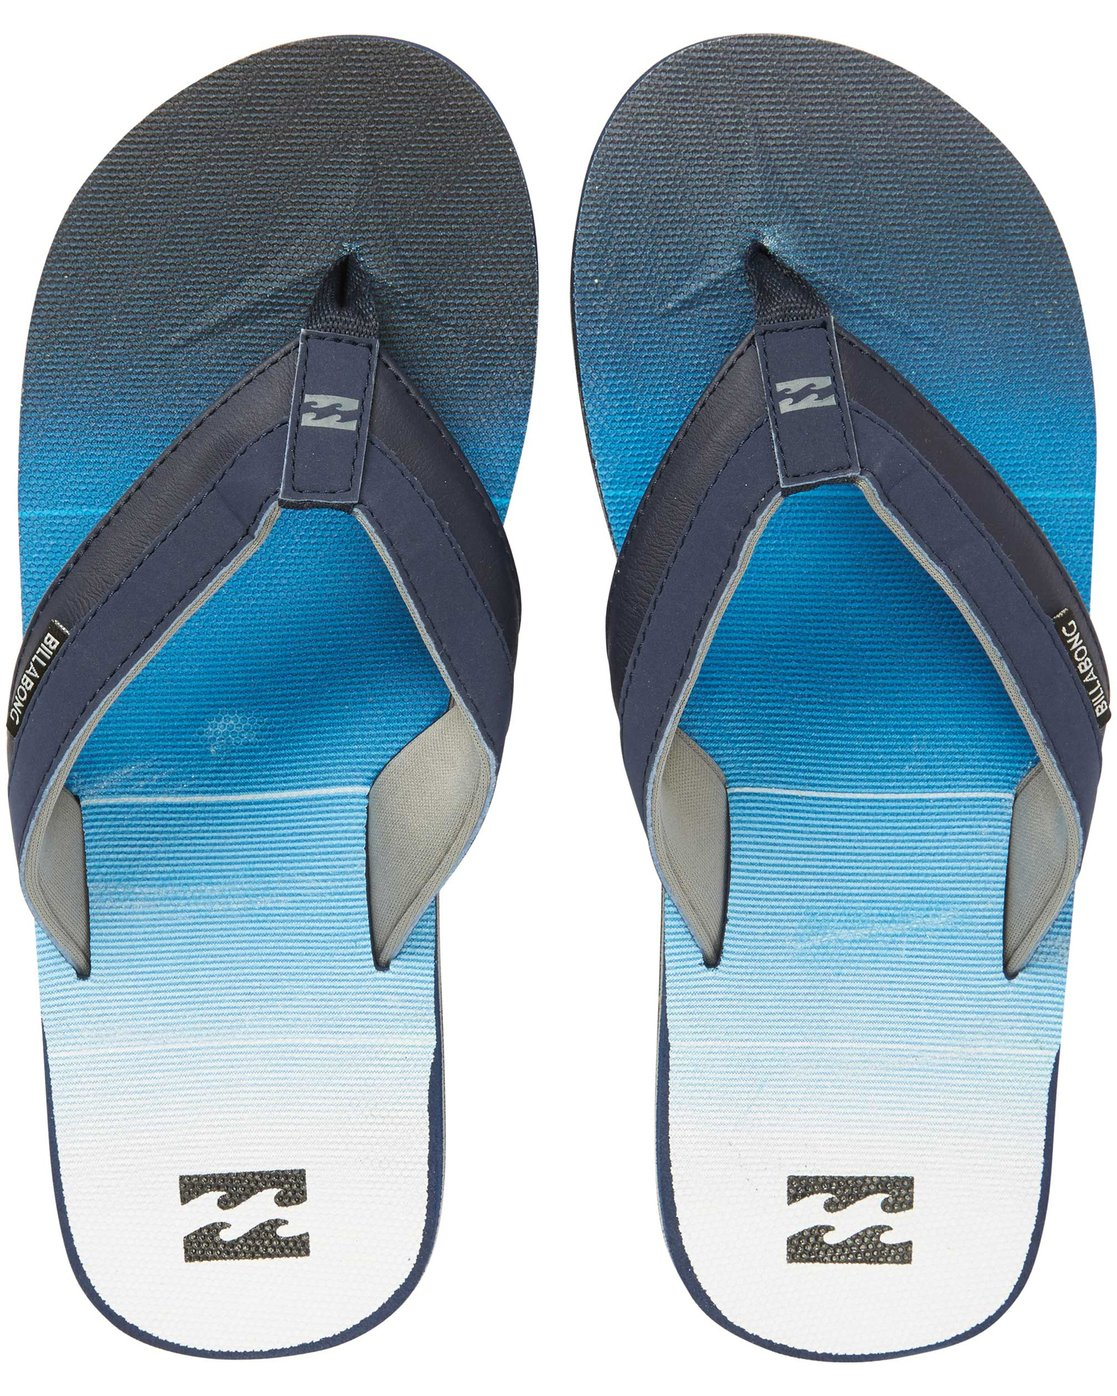 Billabong All Day Impact Footwear Sandals Black All Sizes